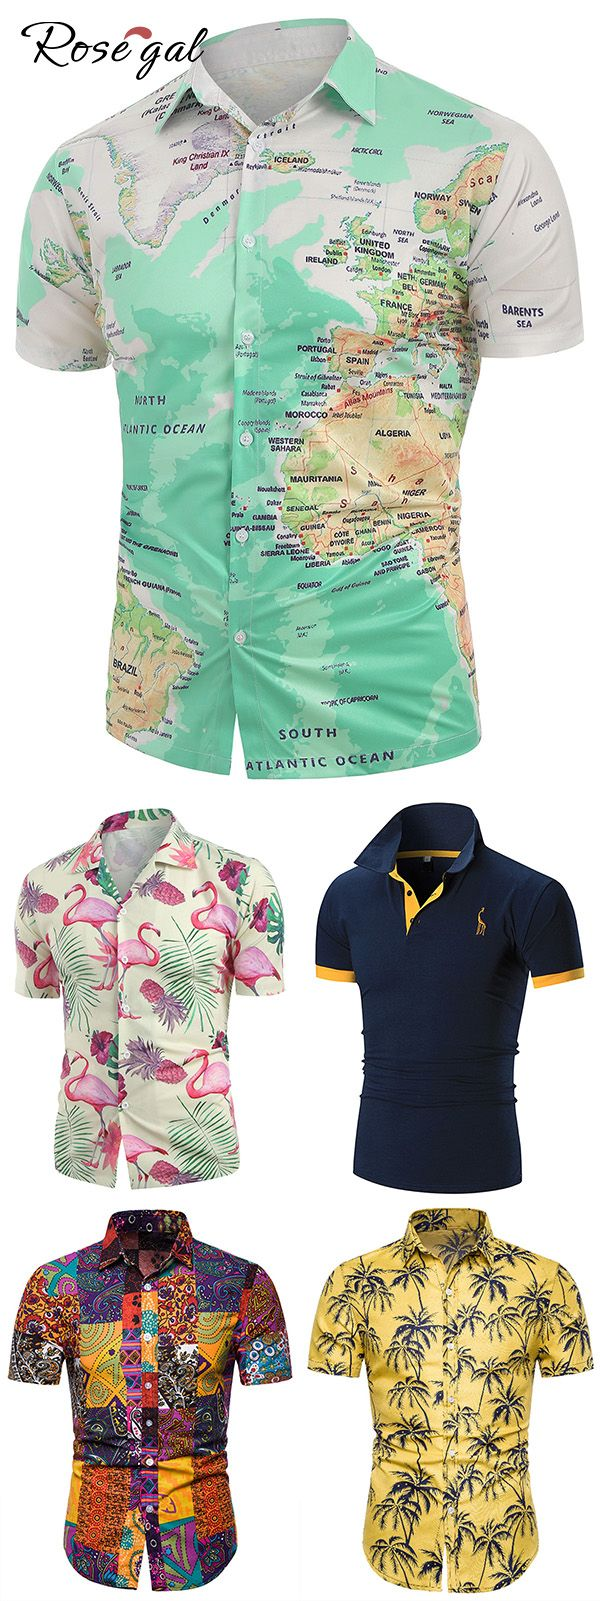 Rosegal mens summer shirts ideas map and 3D print is part of diy_crafts - diy_crafts